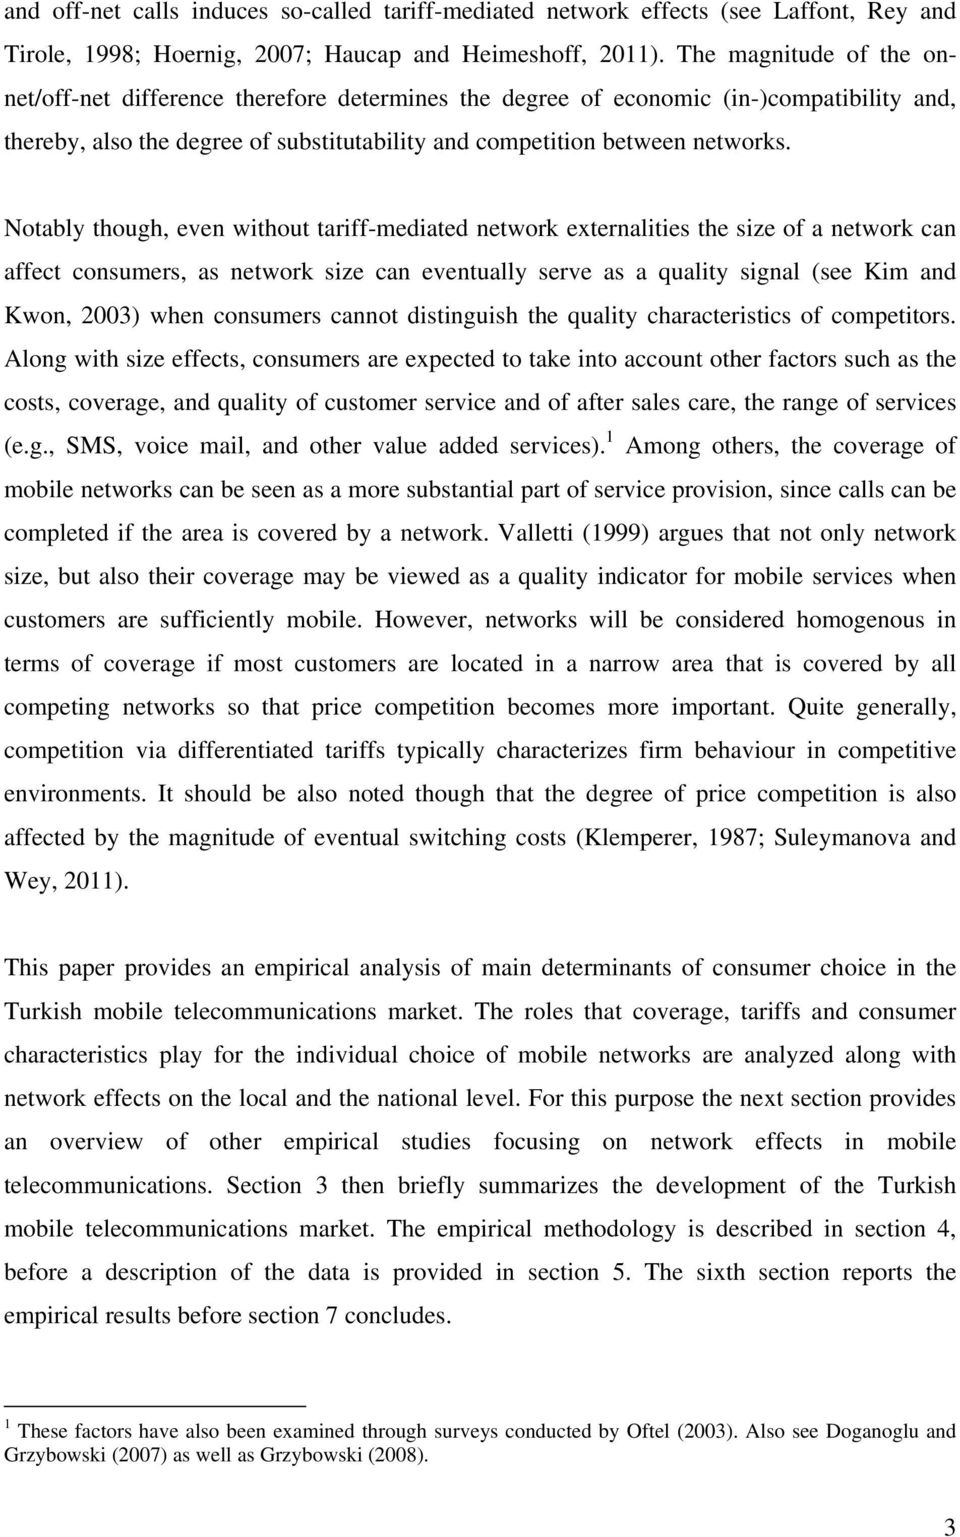 Notably though, even without tariff-mediated network externalities the size of a network can affect consumers, as network size can eventually serve as a quality signal (see Kim and Kwon, 2003) when